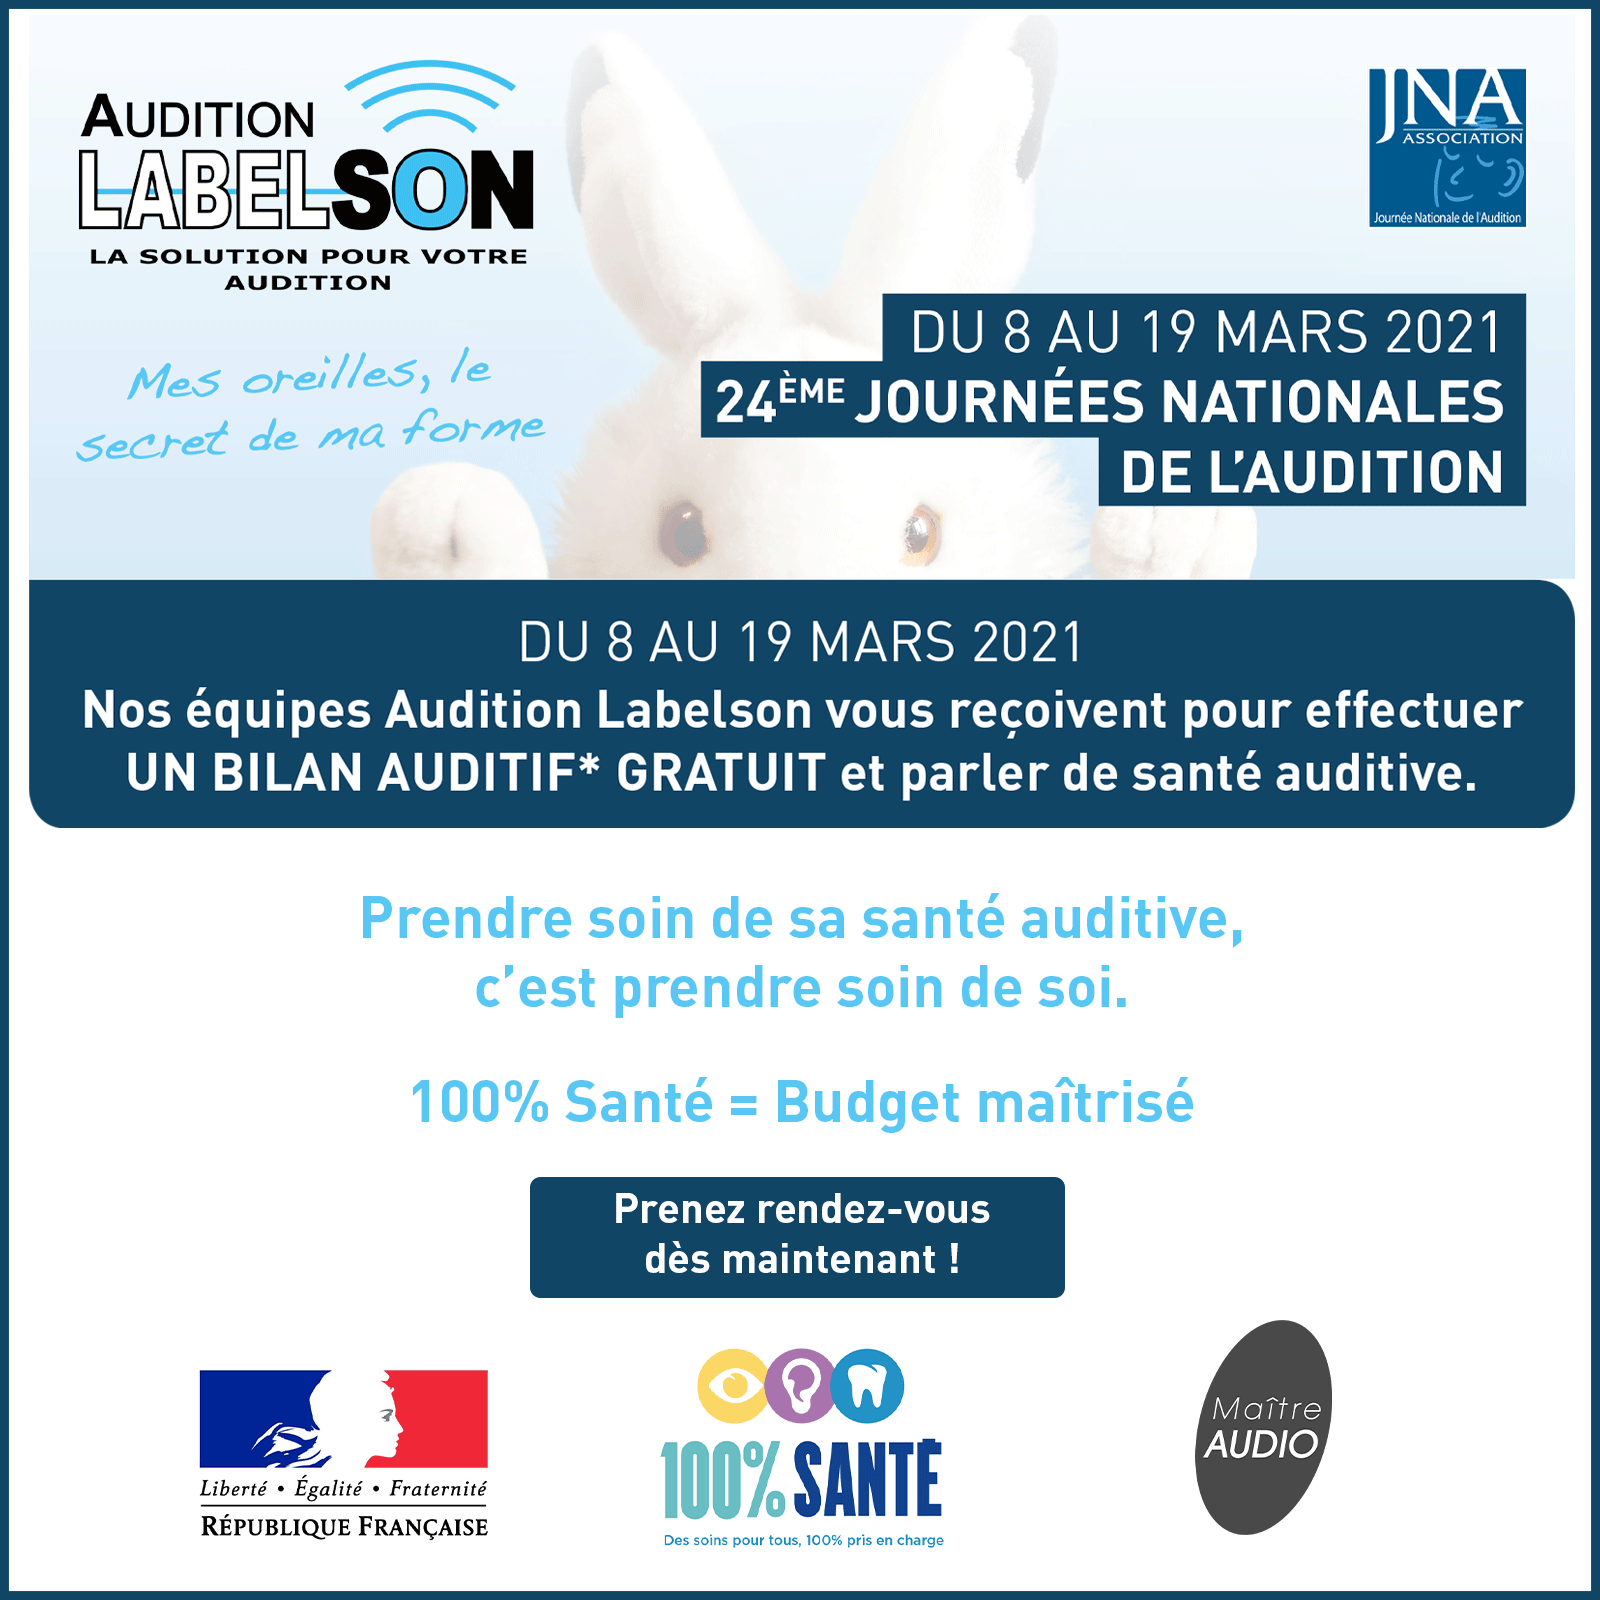 pop-up-JNA-2021-audition-labelson-maitre__audio